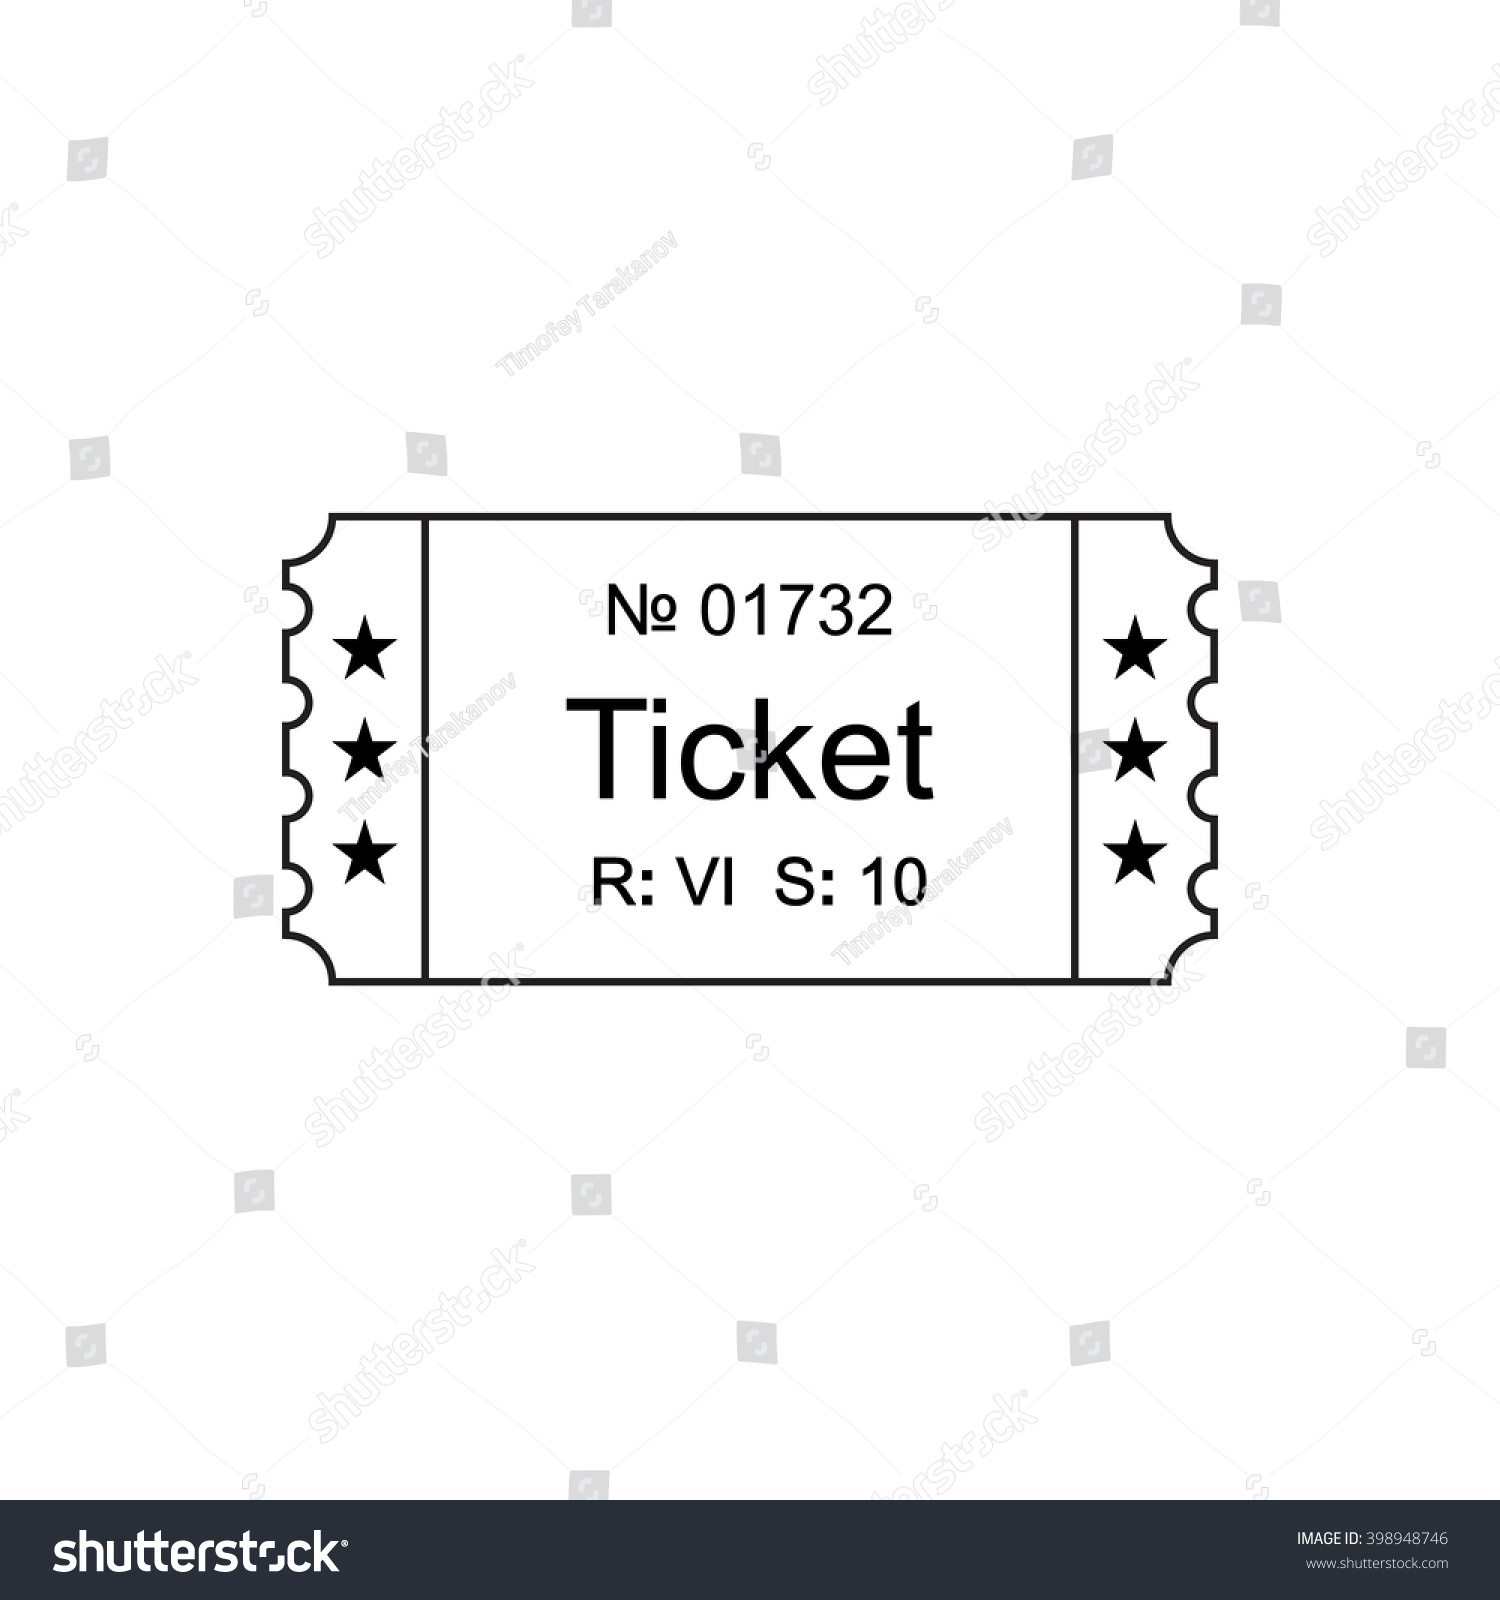 ticket icon in the outline style ticket vector illustration save to a lightbox